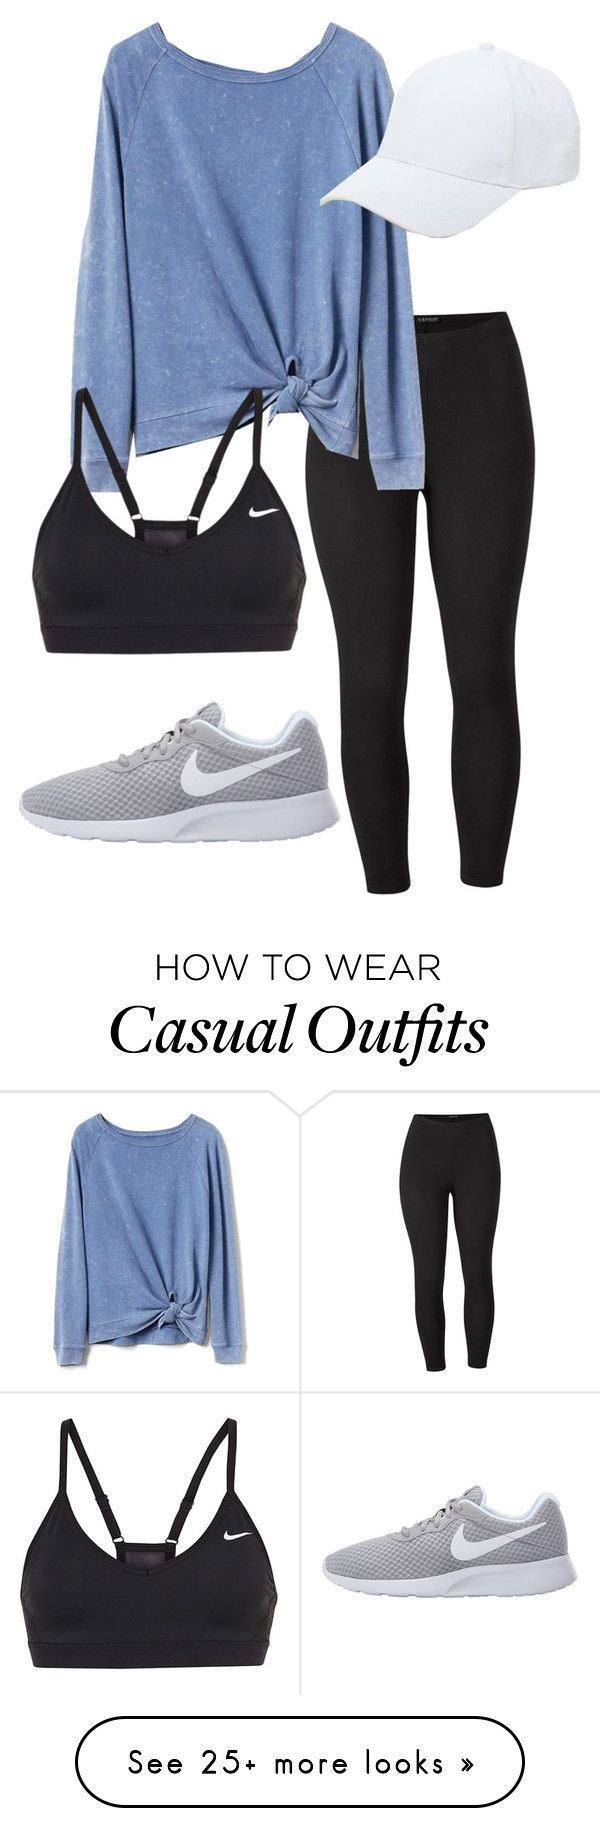 """""""Everyday Casual look ??"""" by smhowie on Polyvore featuring Venus, Gap, NIKE, Sole Society and plus size clothing (Fitness Clothes Outfits)"""